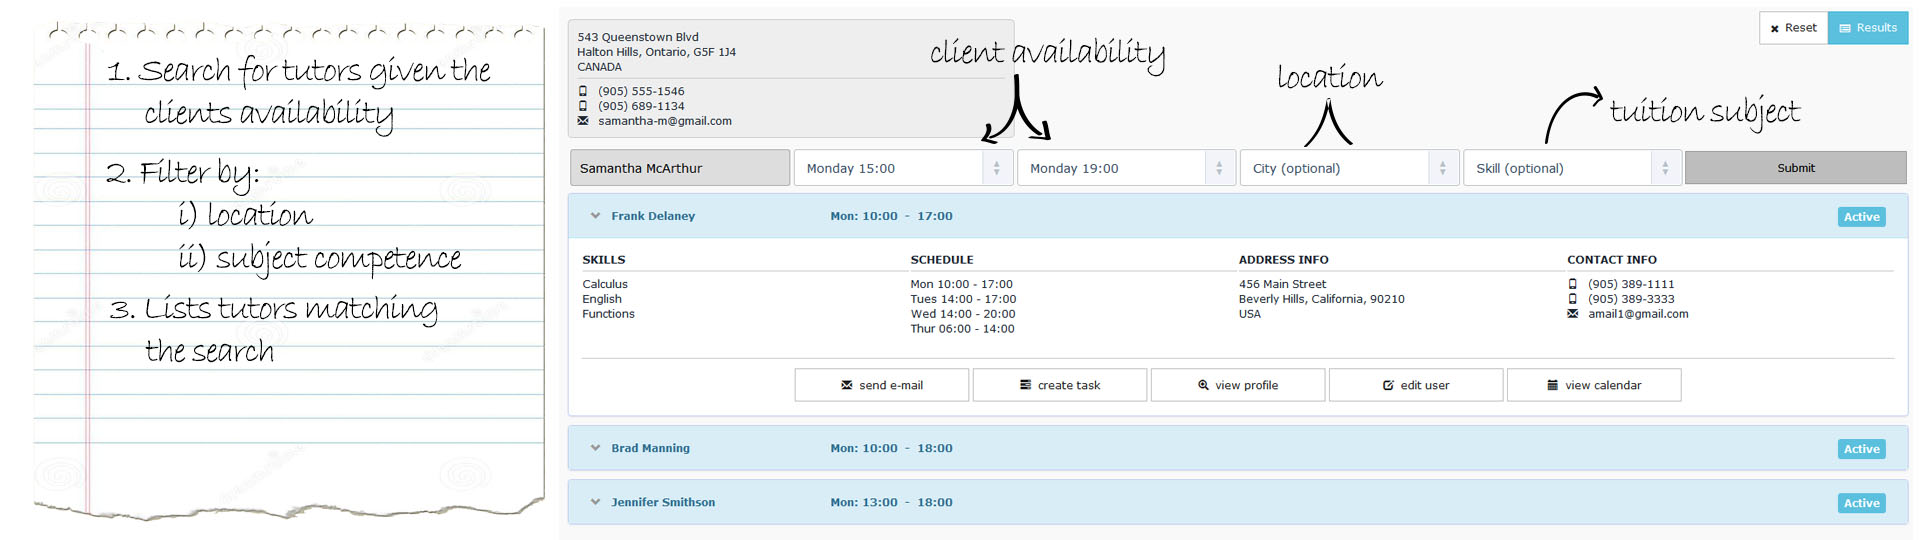 Scheduling Software for Tutoring Companies